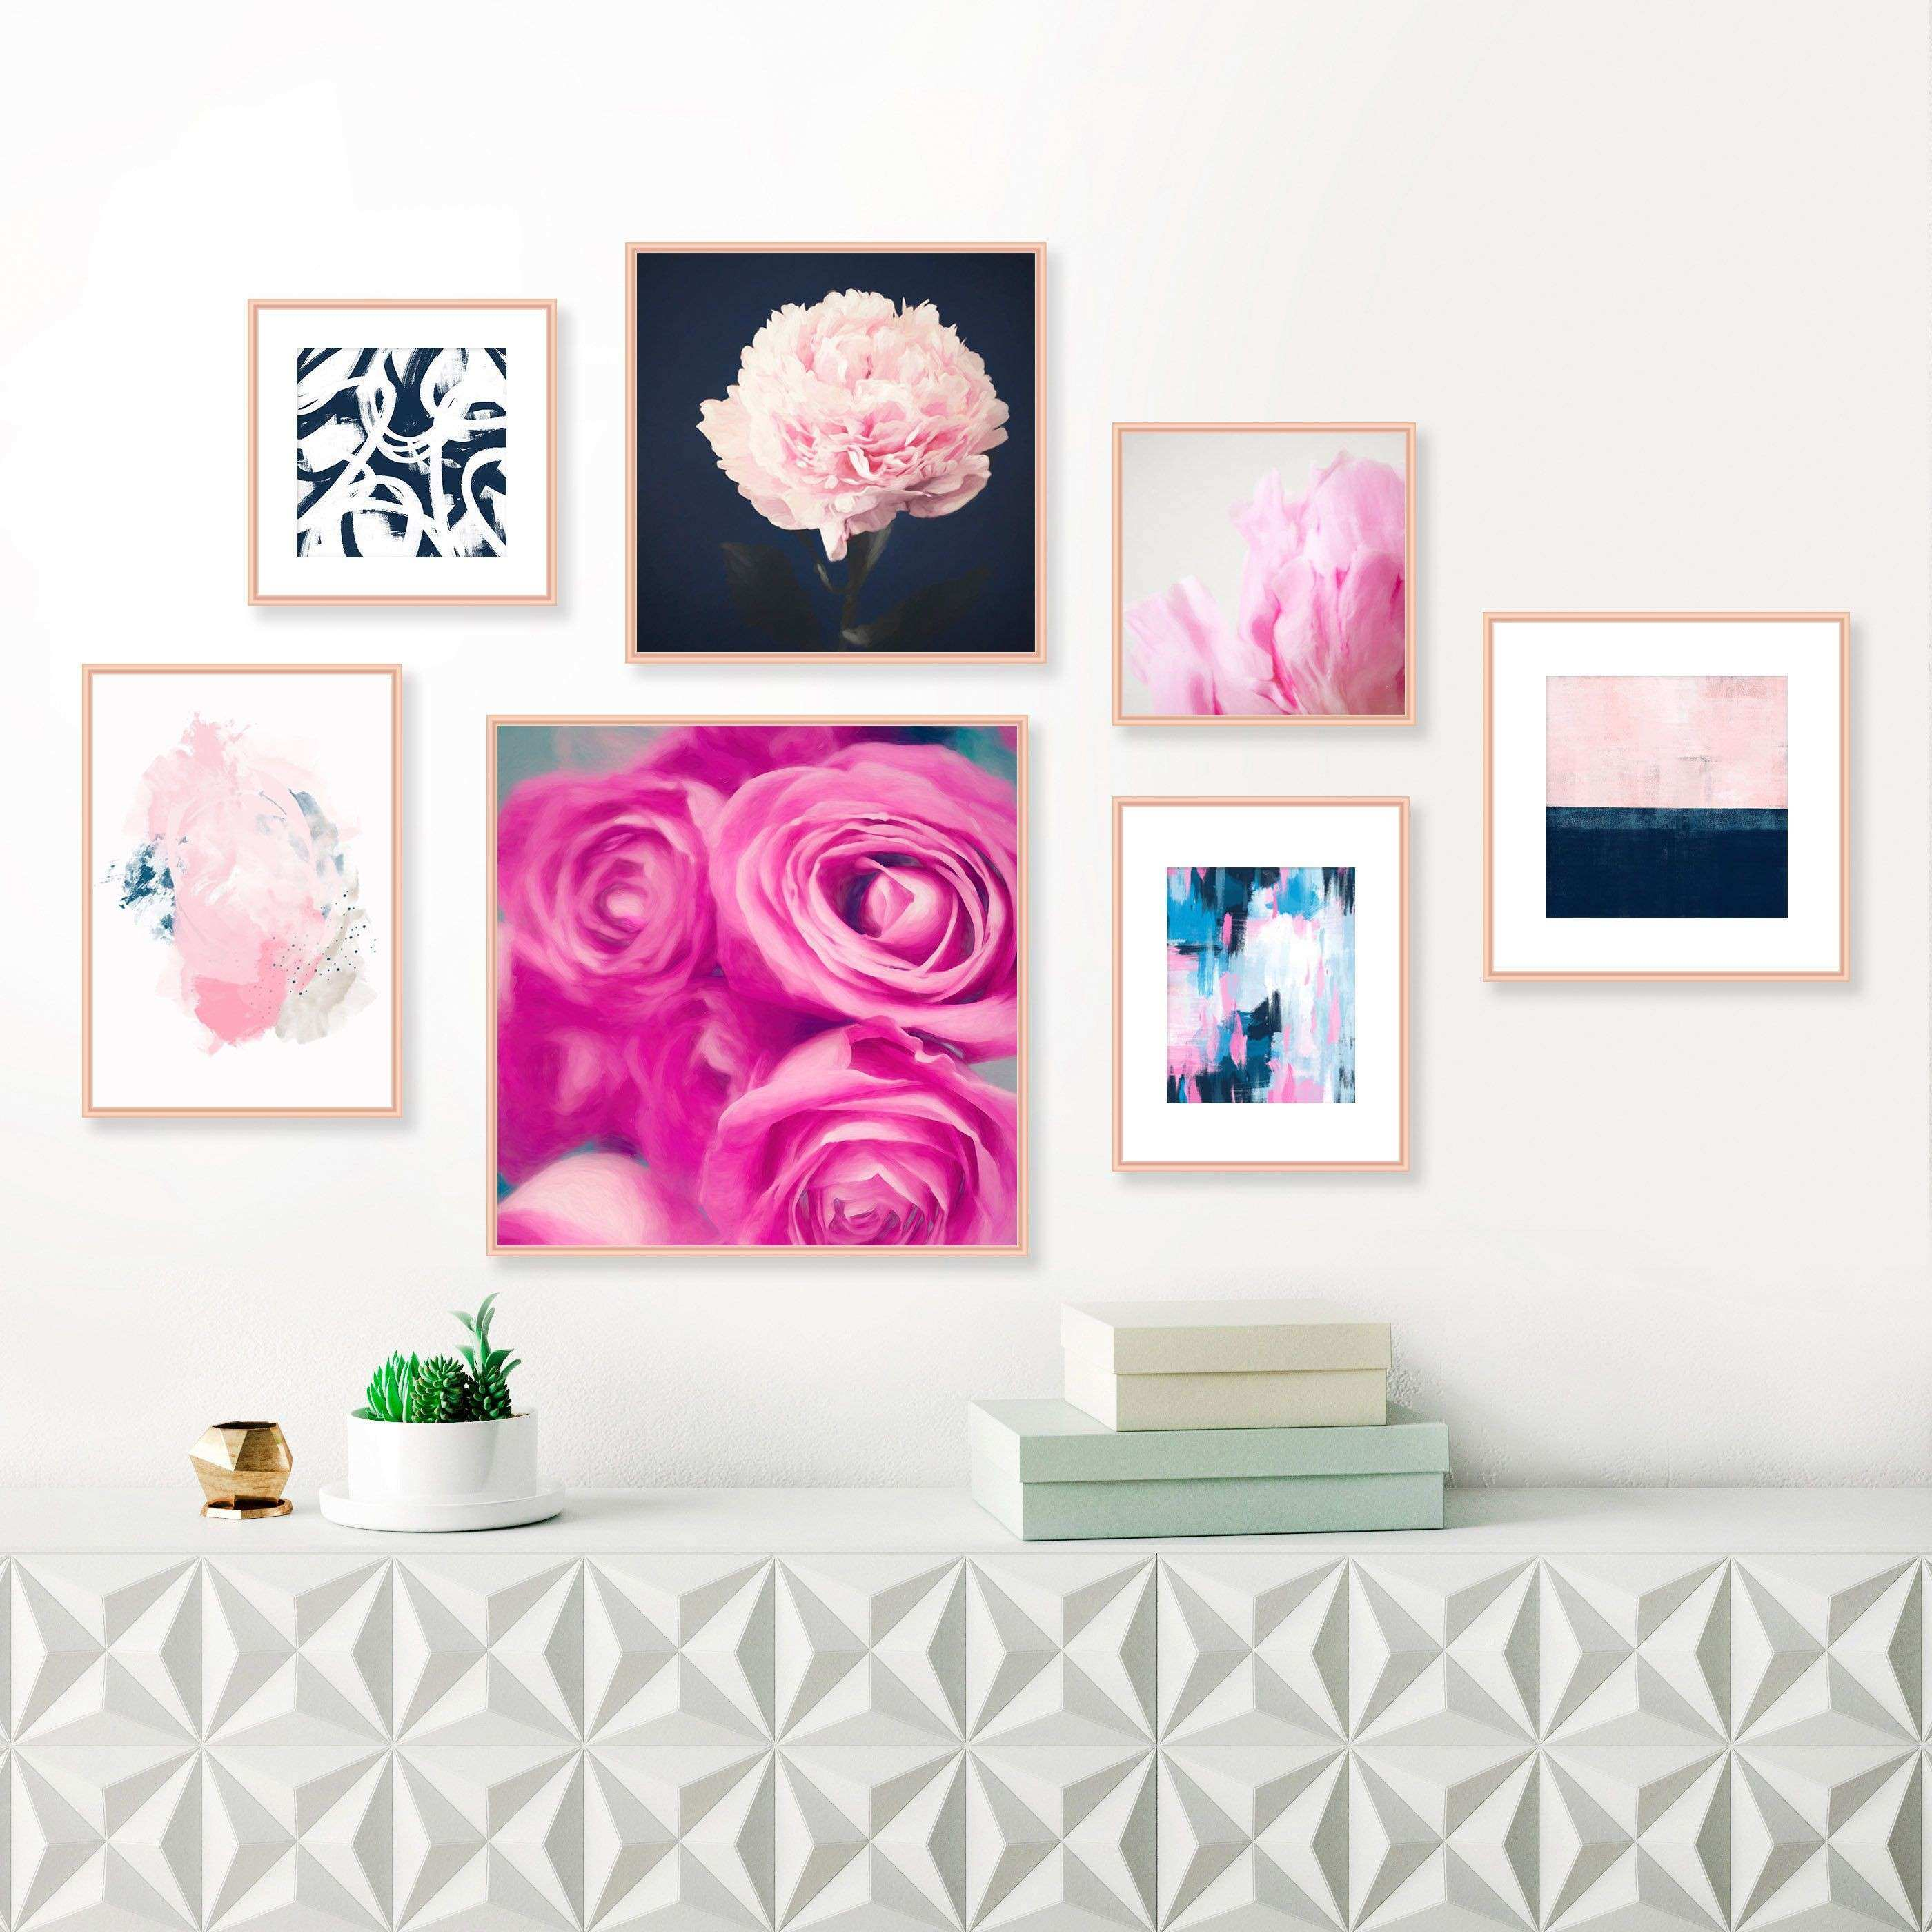 Pink and Navy Gallery Wall Prints Set of 7 Prints Modern Prints